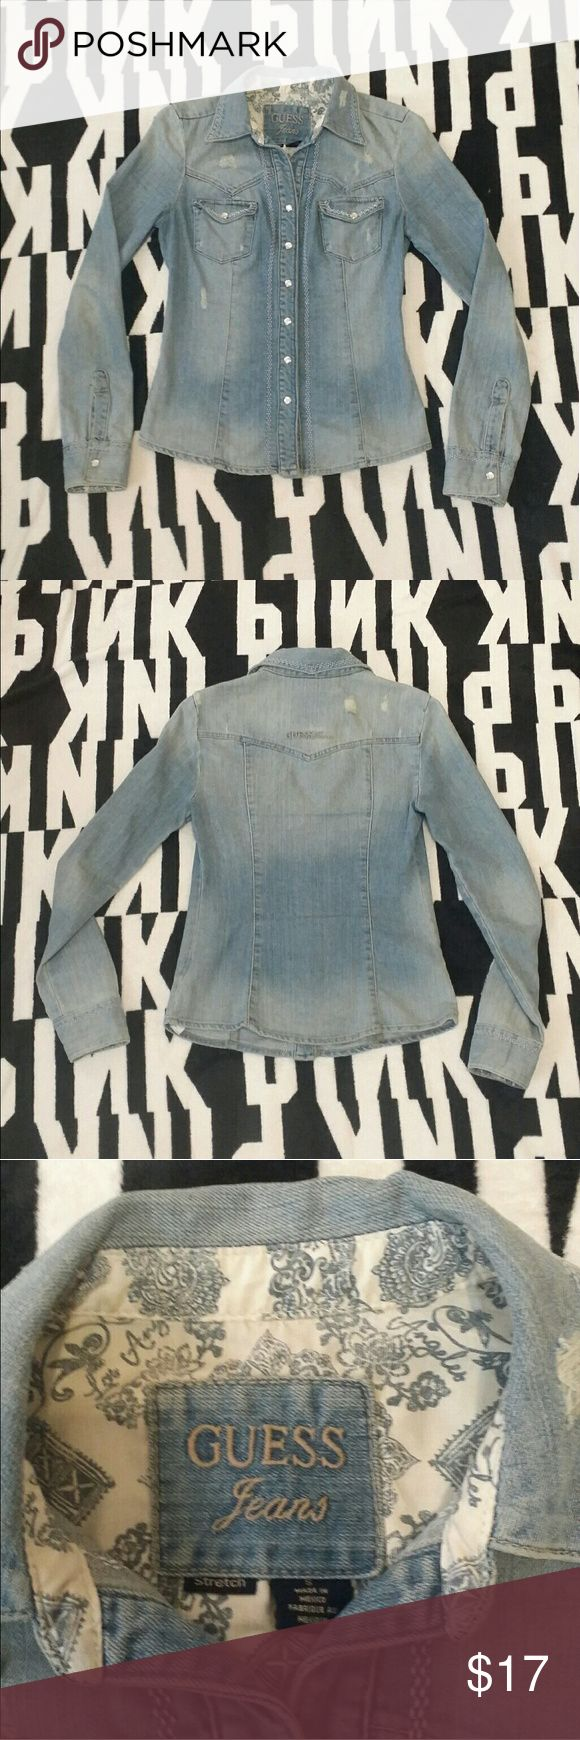 Guess denim long sleeve top Size small Guess Tops Button Down Shirts